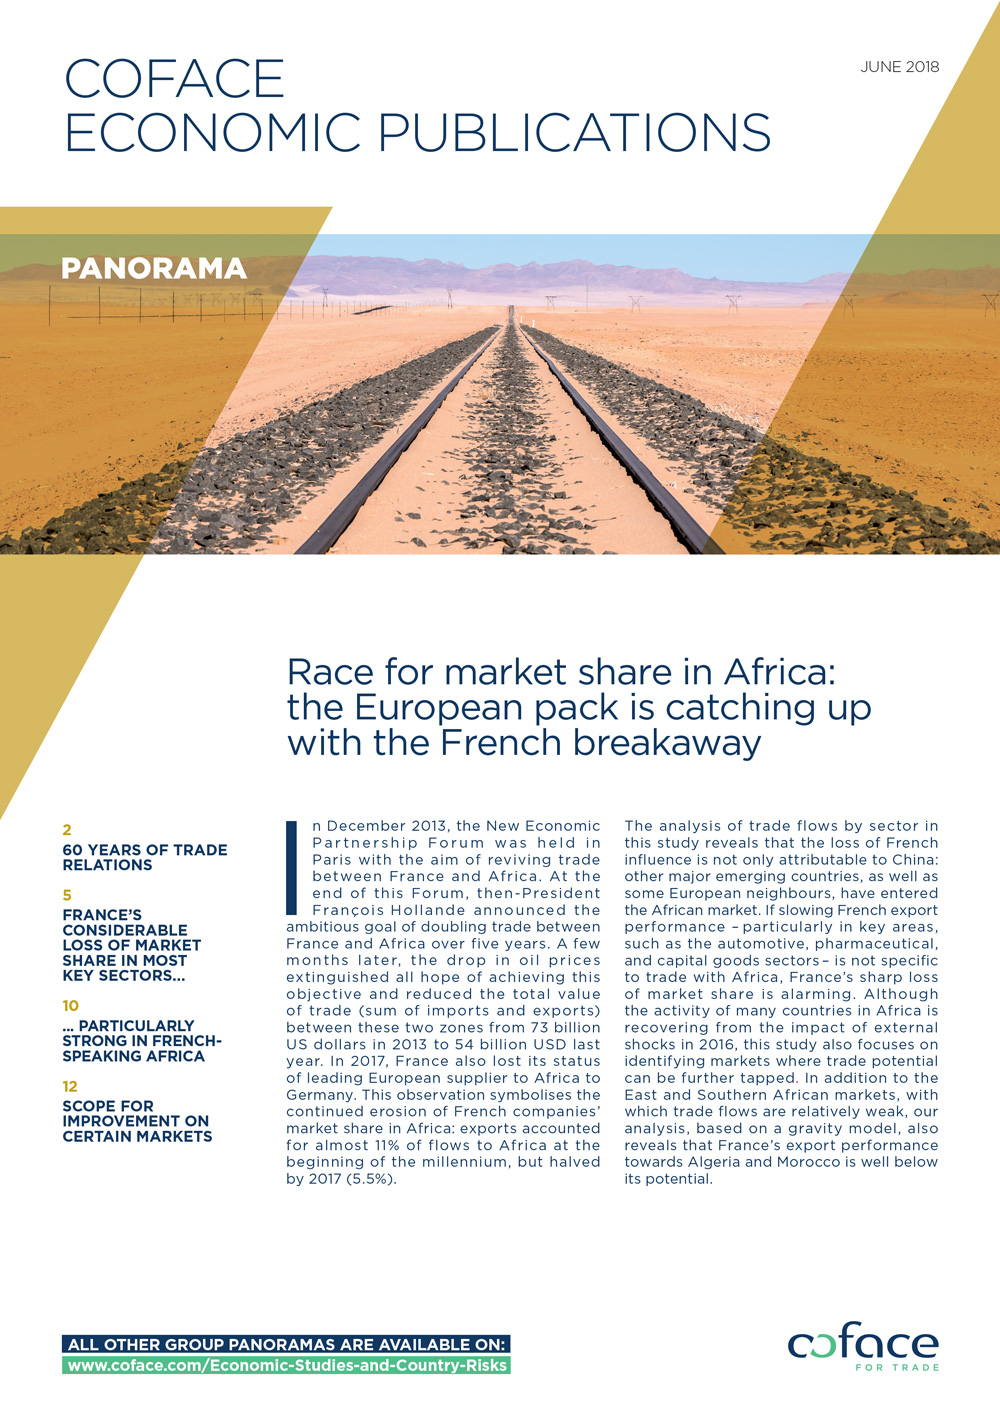 Race for market share in Africa